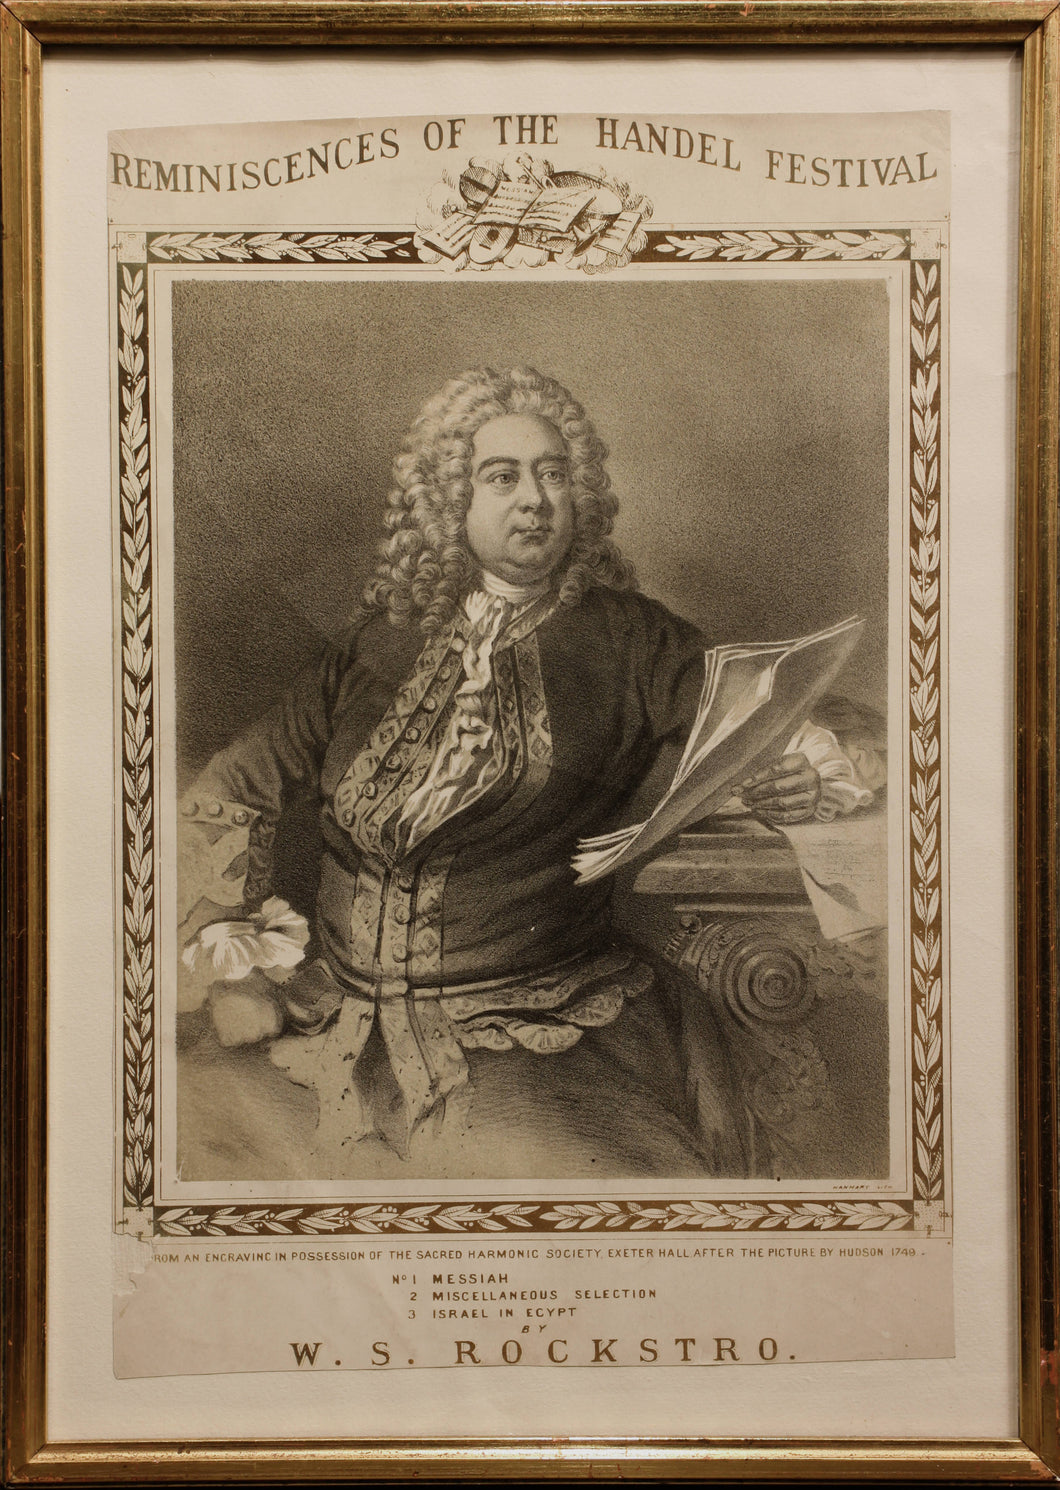 Reminiscences of the Handel Festival - Lithograph circa 1860s